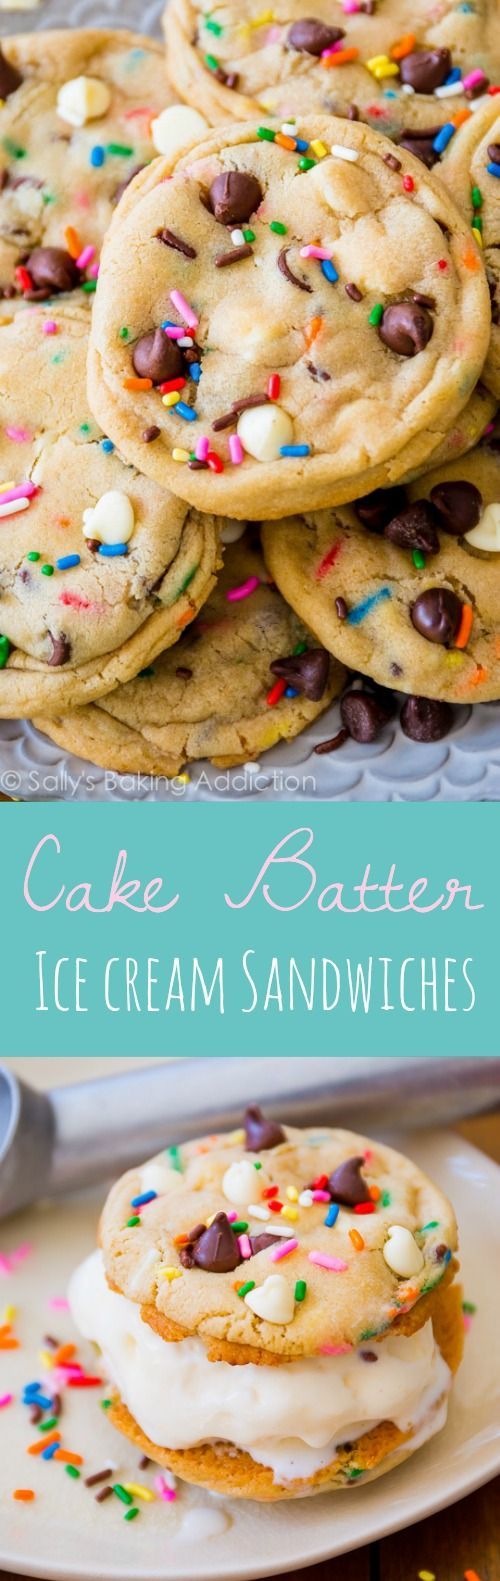 Cake Batter Cookie Ice Cream Sandwiches will be your new favorite summer treat!